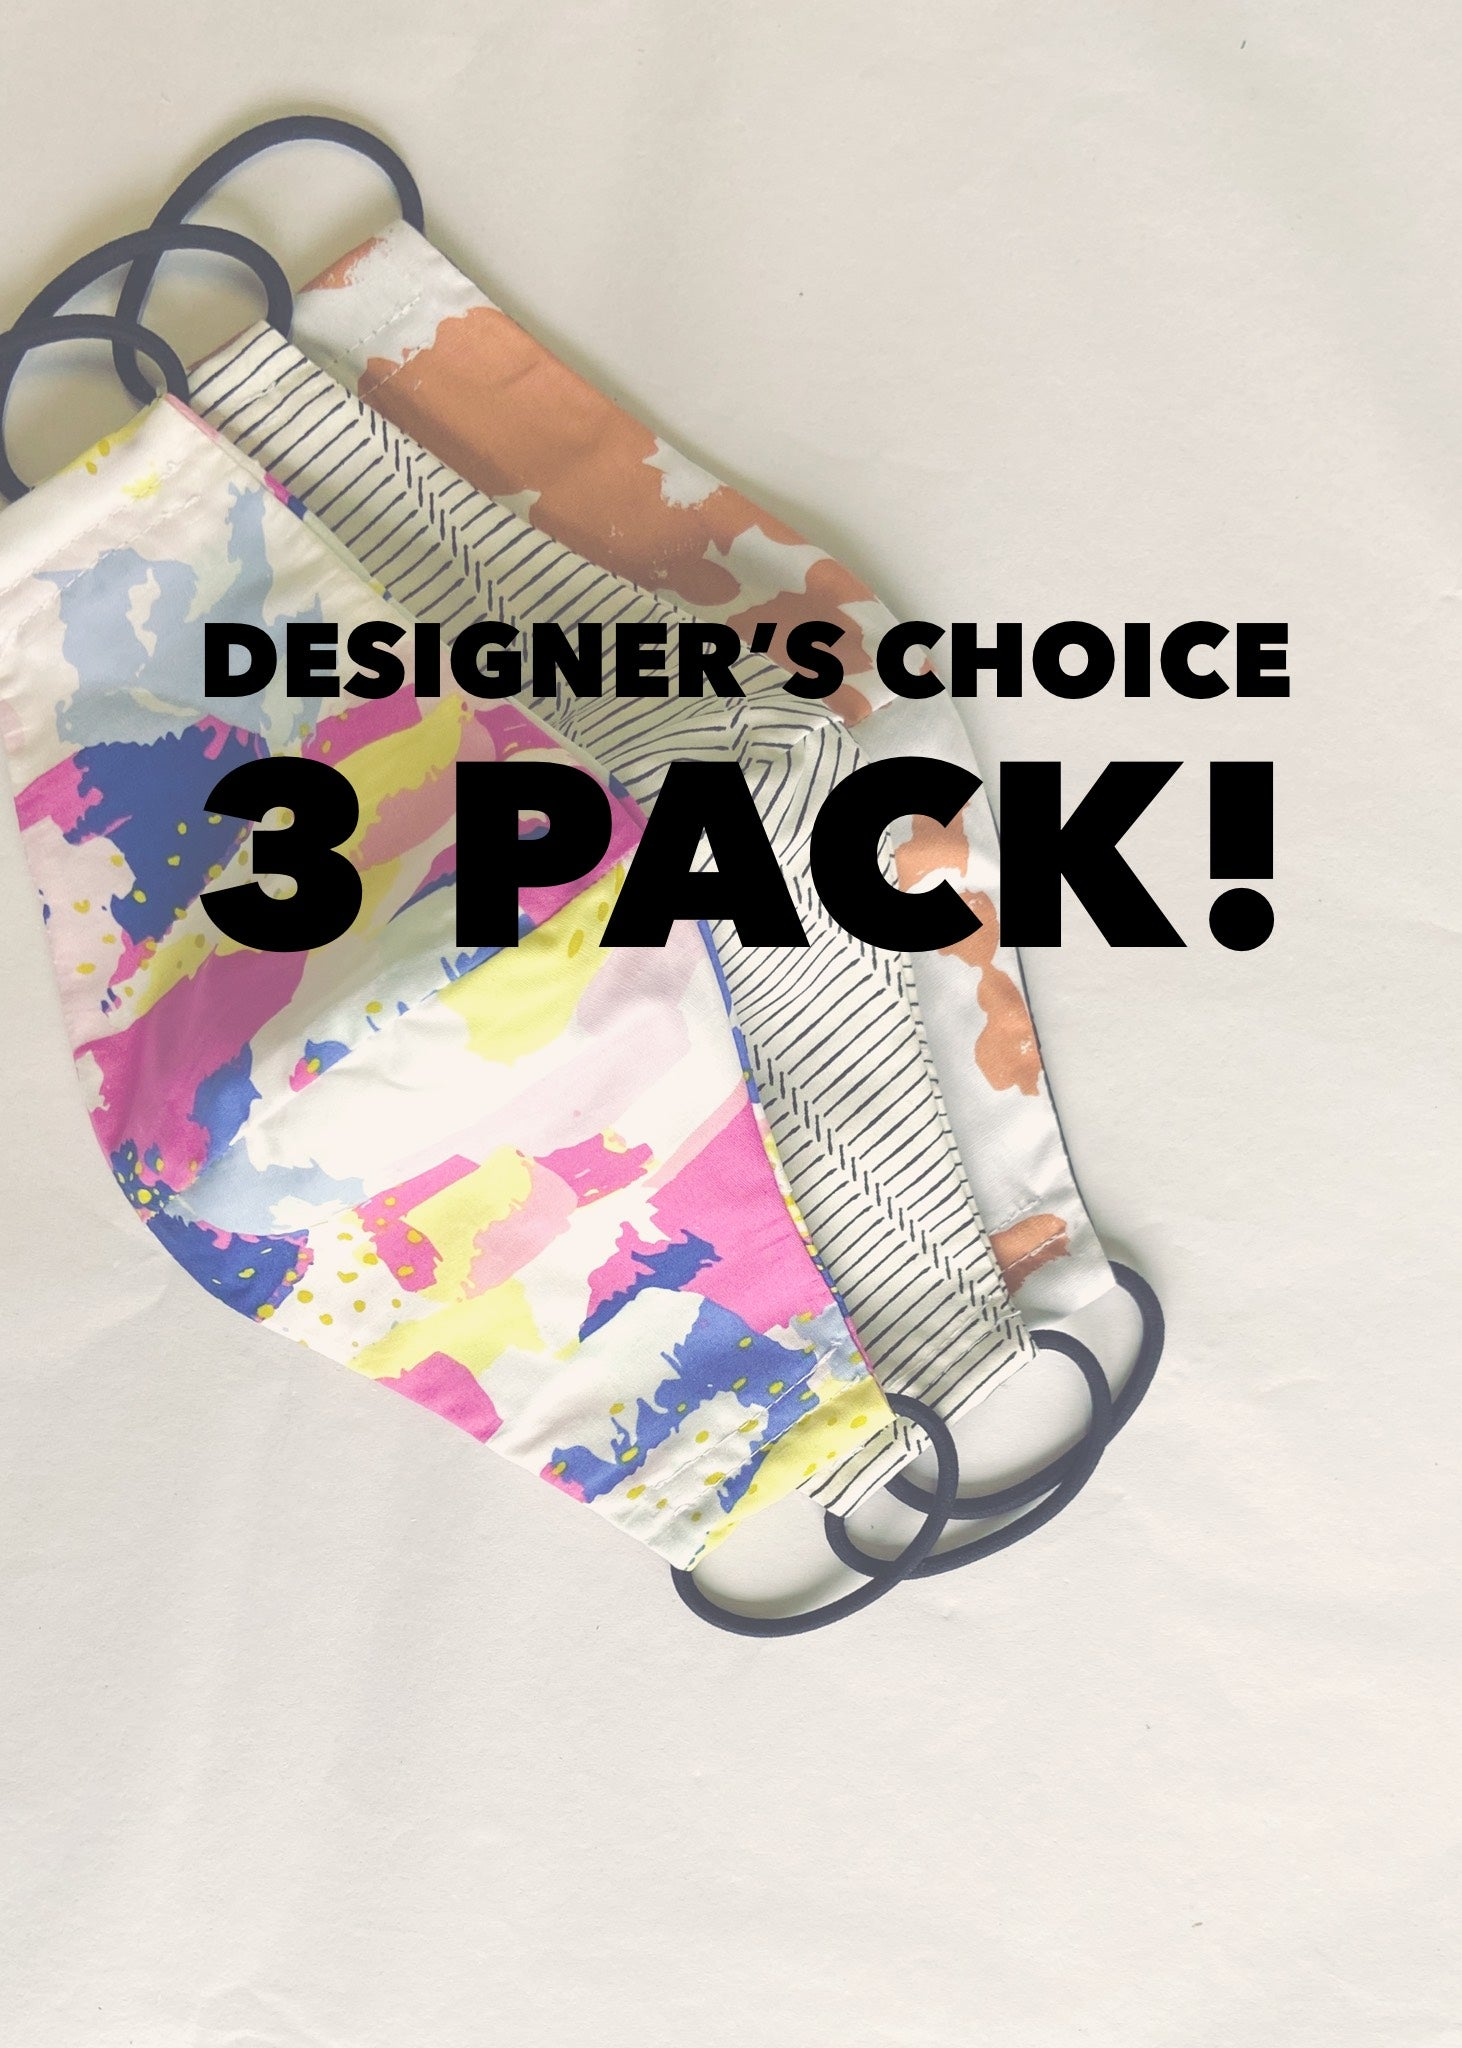 Designer's Choice 3 Pack